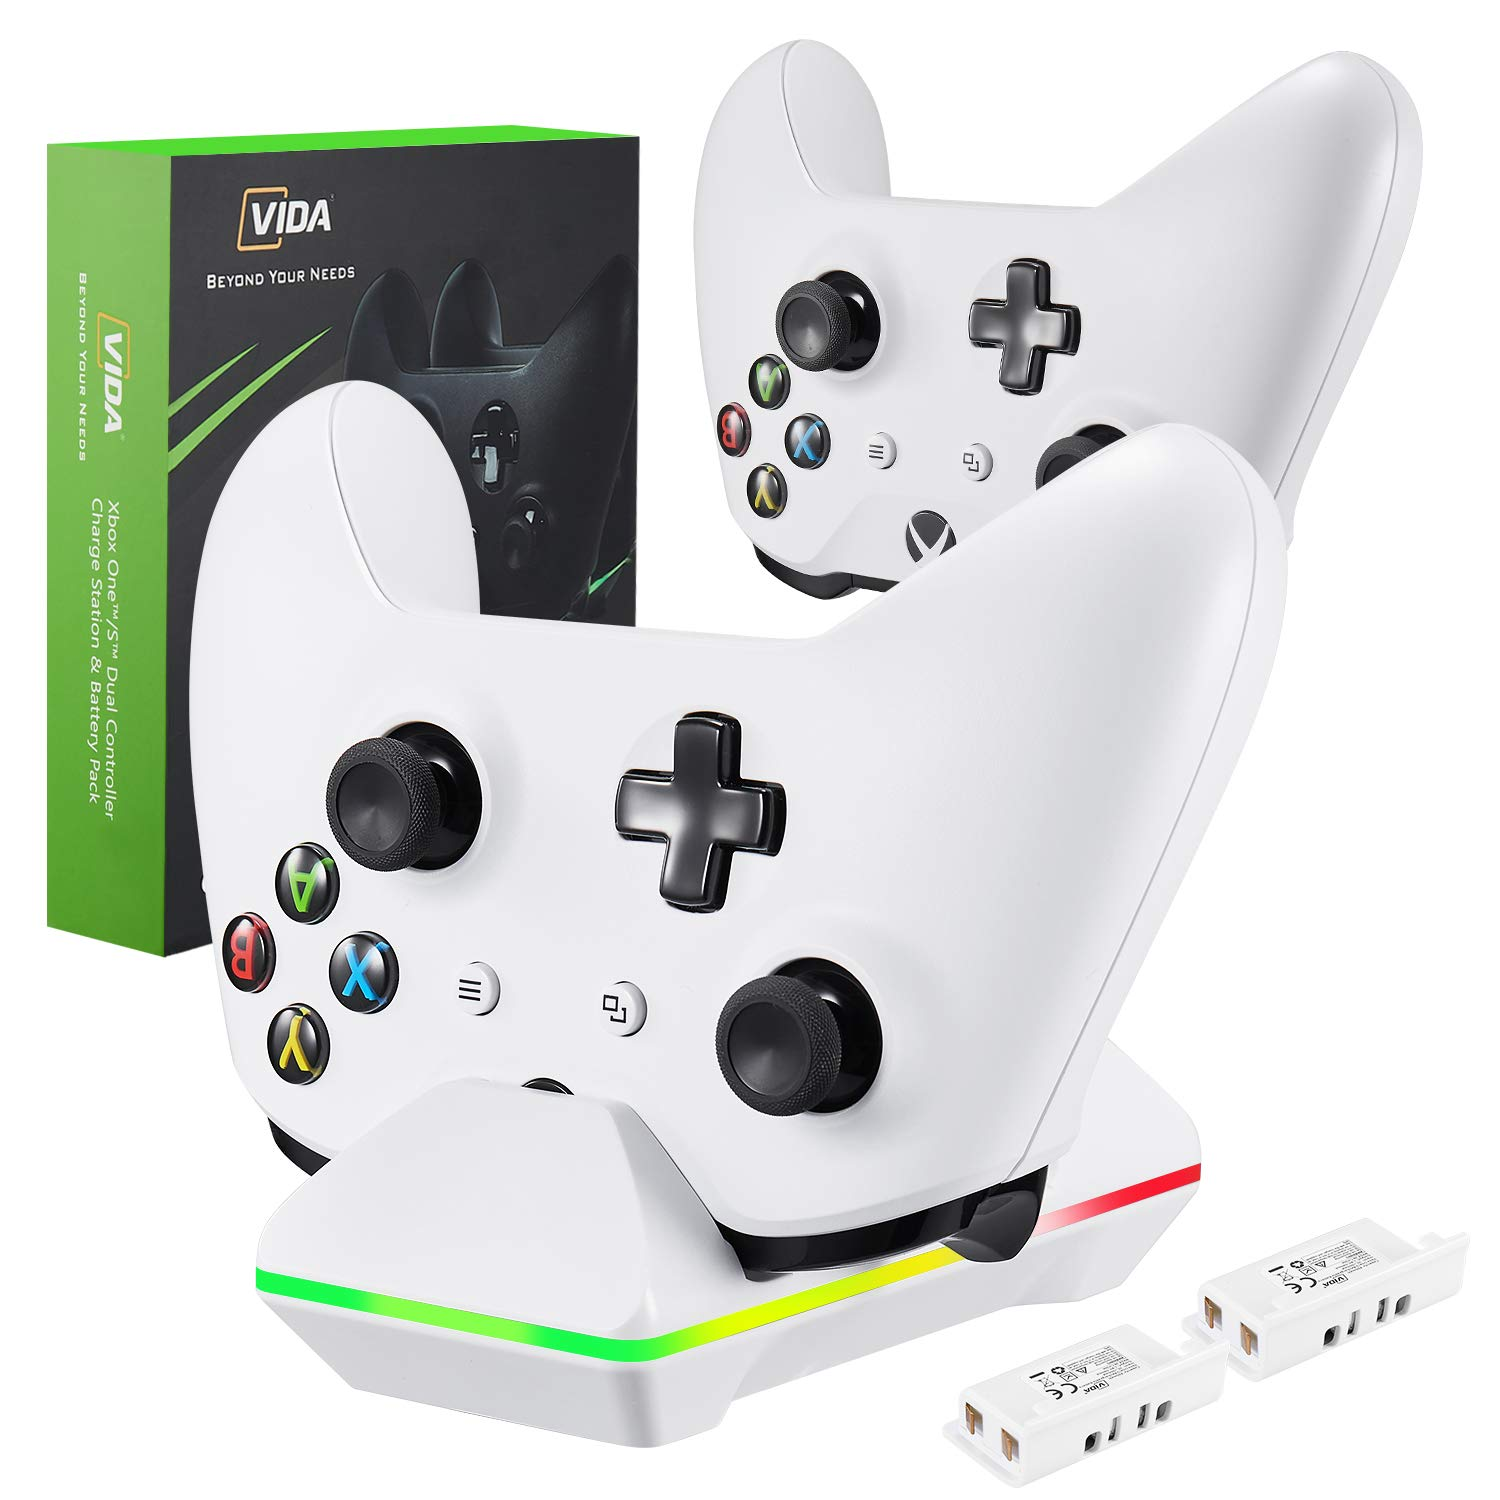 Xbox One Controller Charger, CVIDA Dual Xbox One/One S/One Elite Charging Station with 2 x 800mAh Rechargeable Battery Packs for Two Wireless Controllers Charge Kit- White by CVIDA (Image #7)